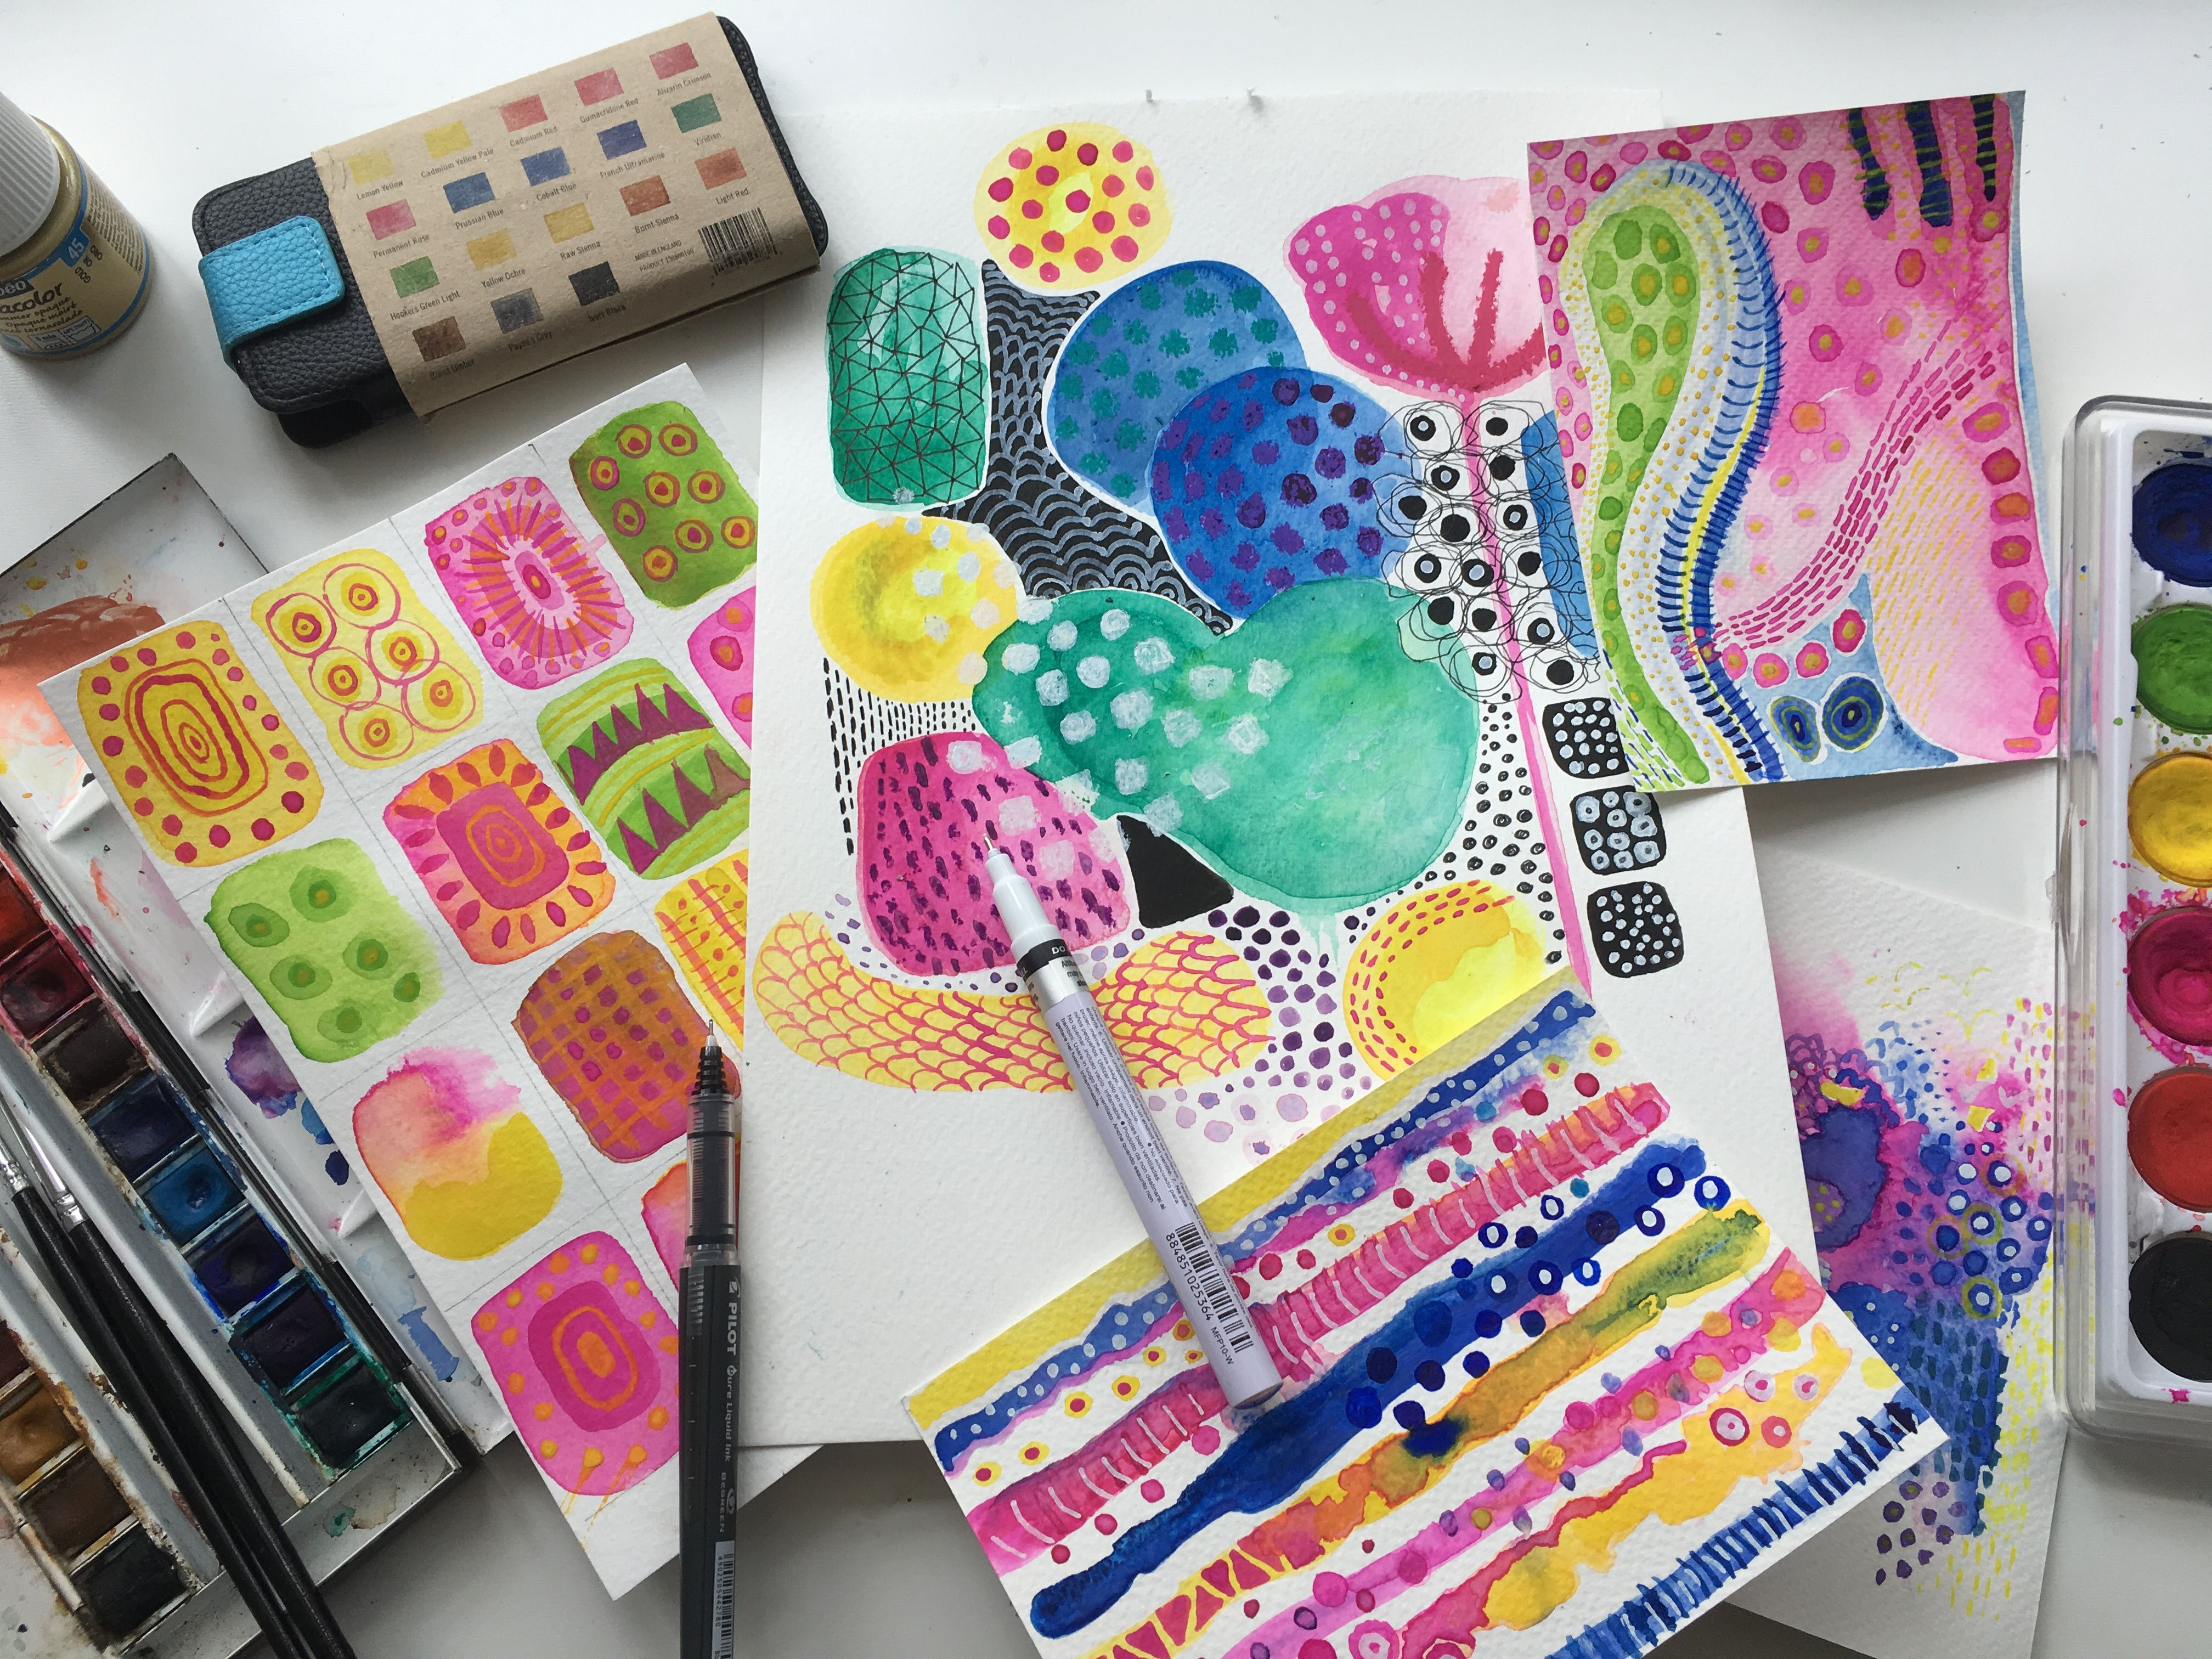 Creative Watercolor Painting Experimenting With Colour